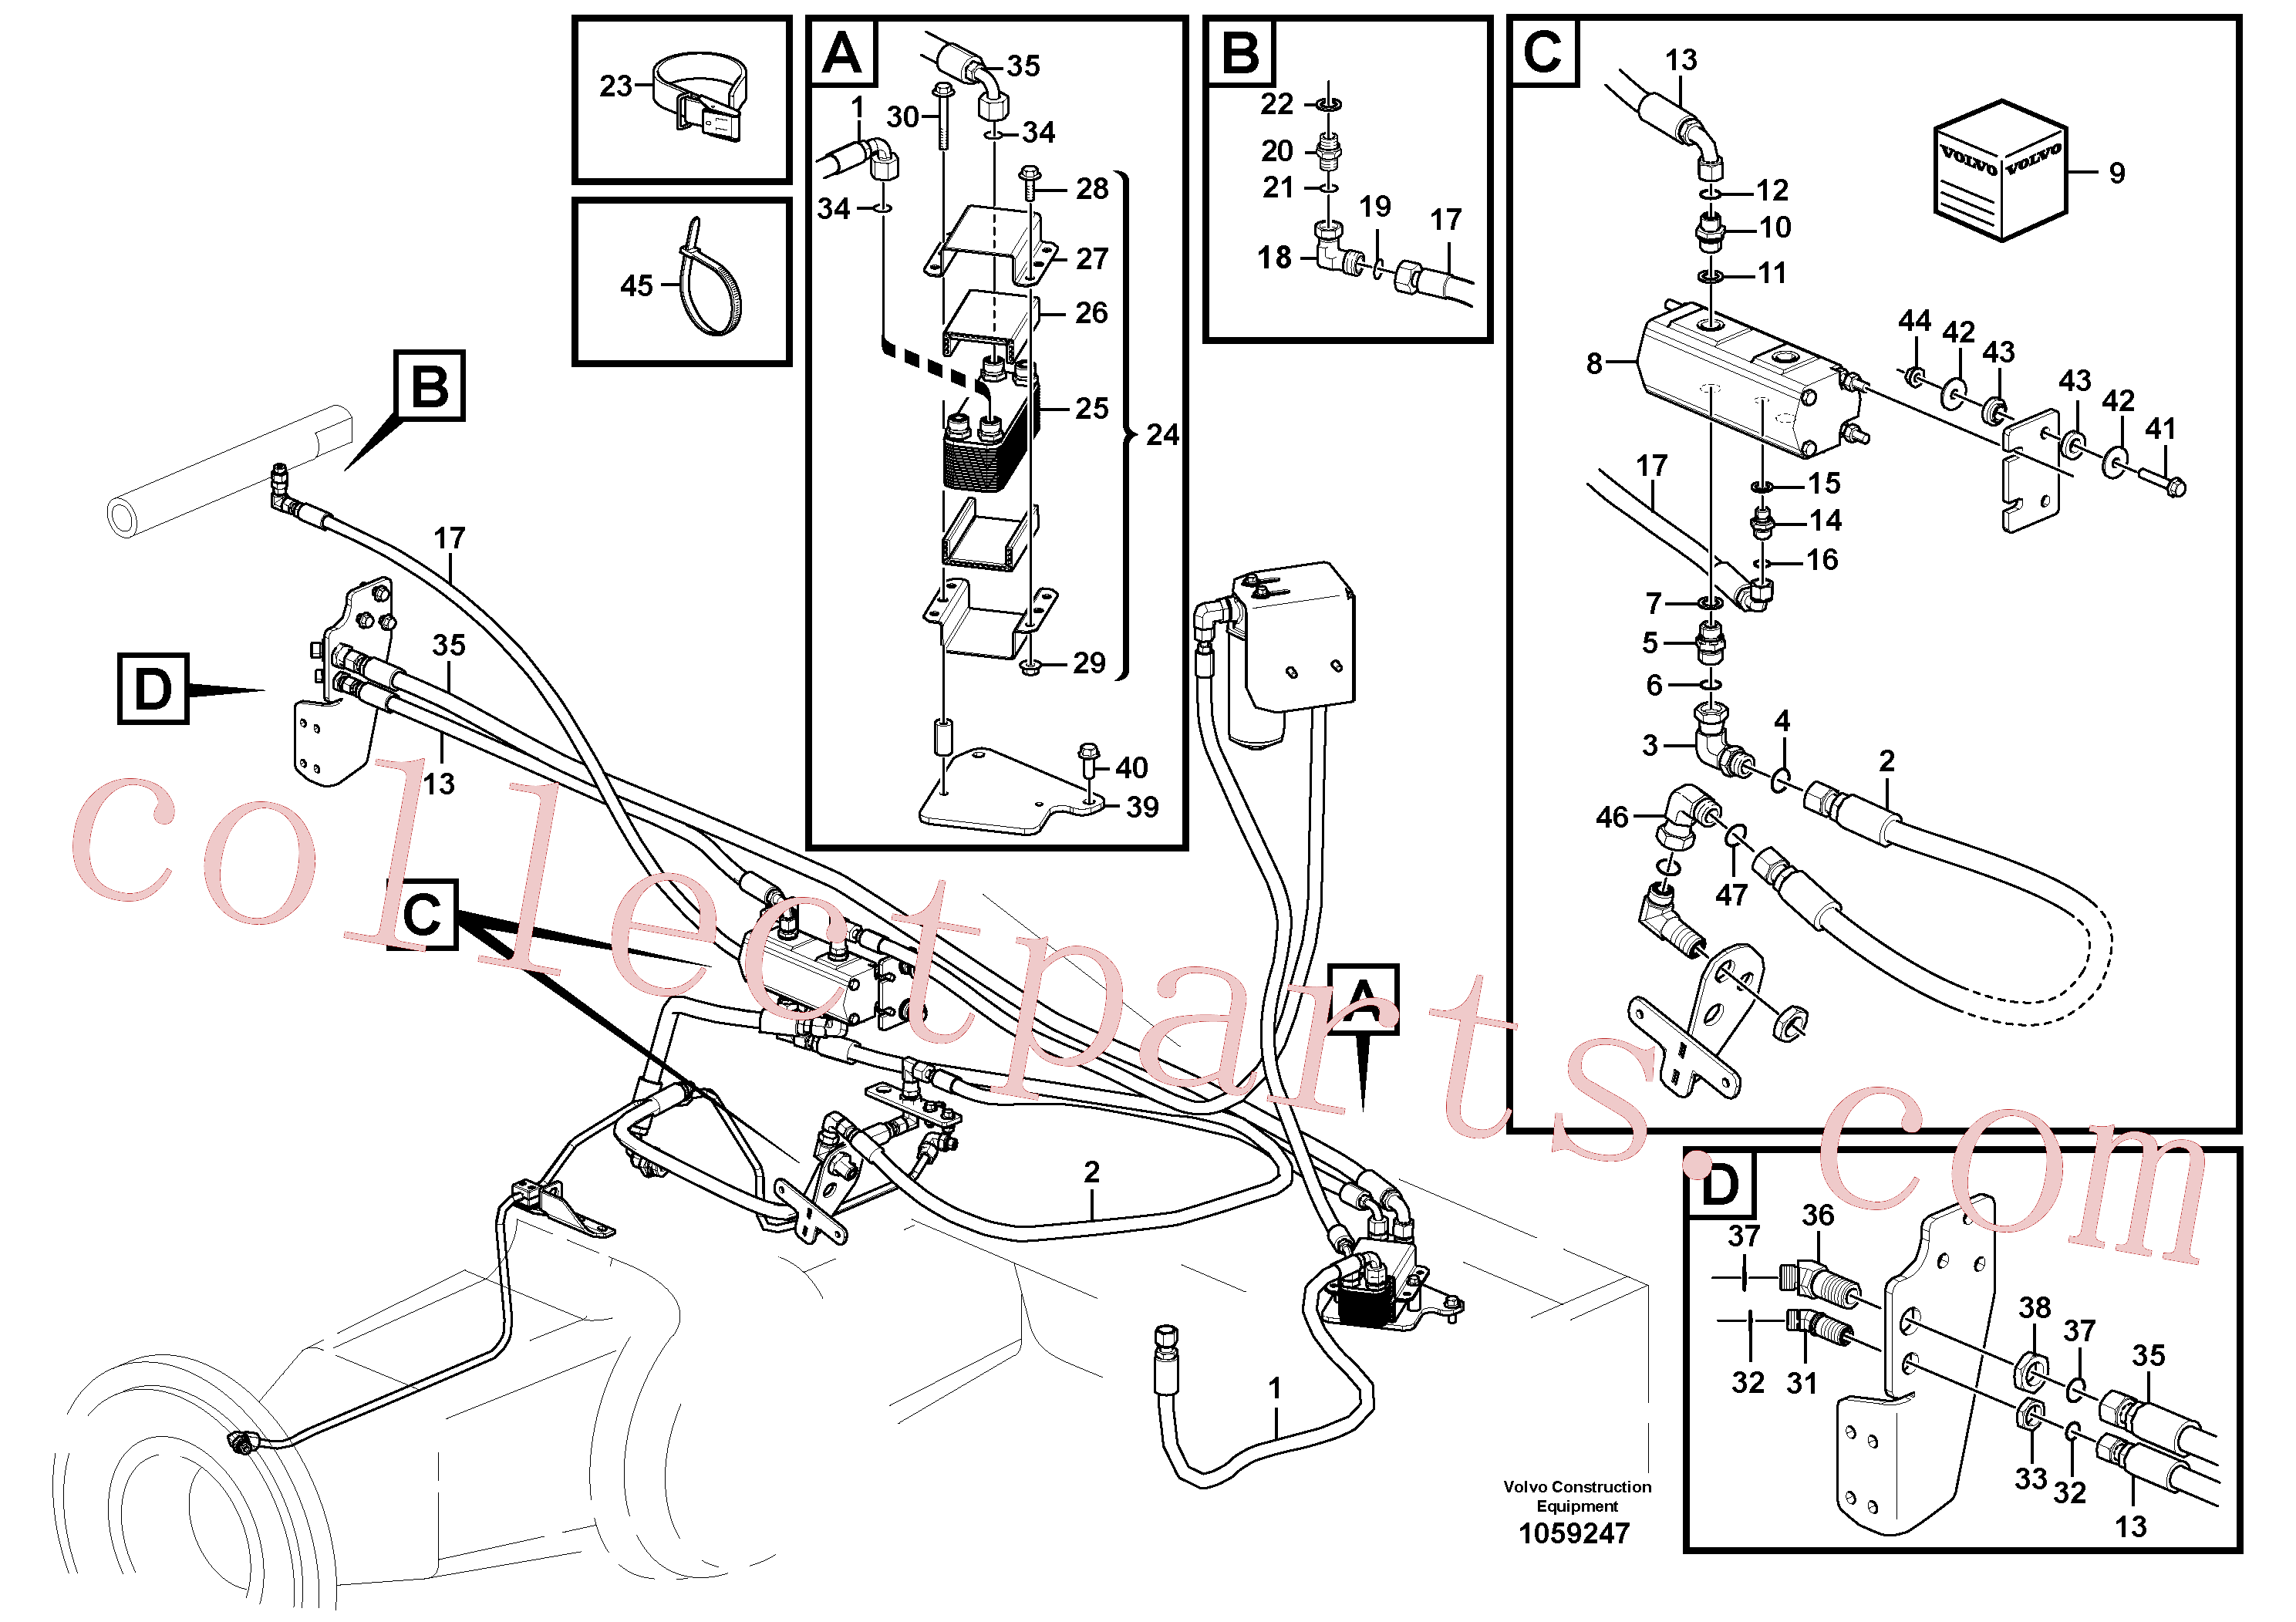 VOE13933962 for Volvo Oil cooler, rear, motor circuit.(1059247 assembly)